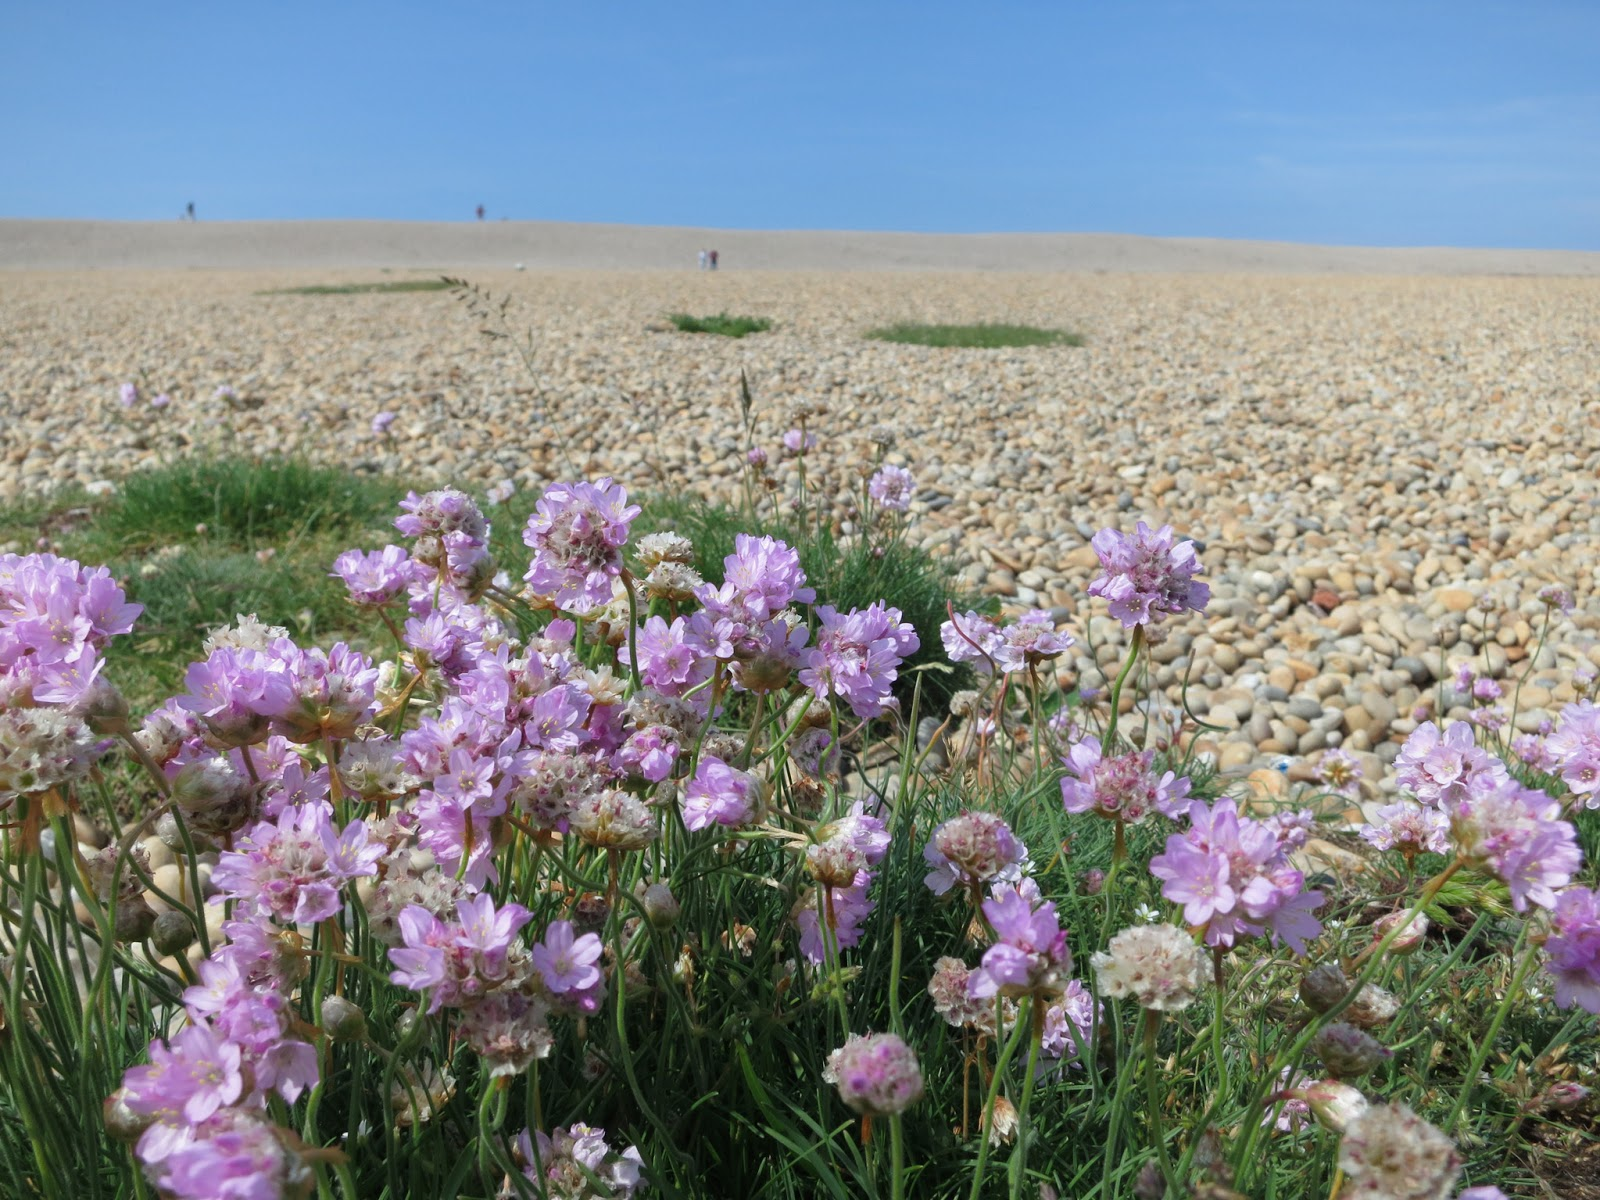 Thrift flowering in the foreground